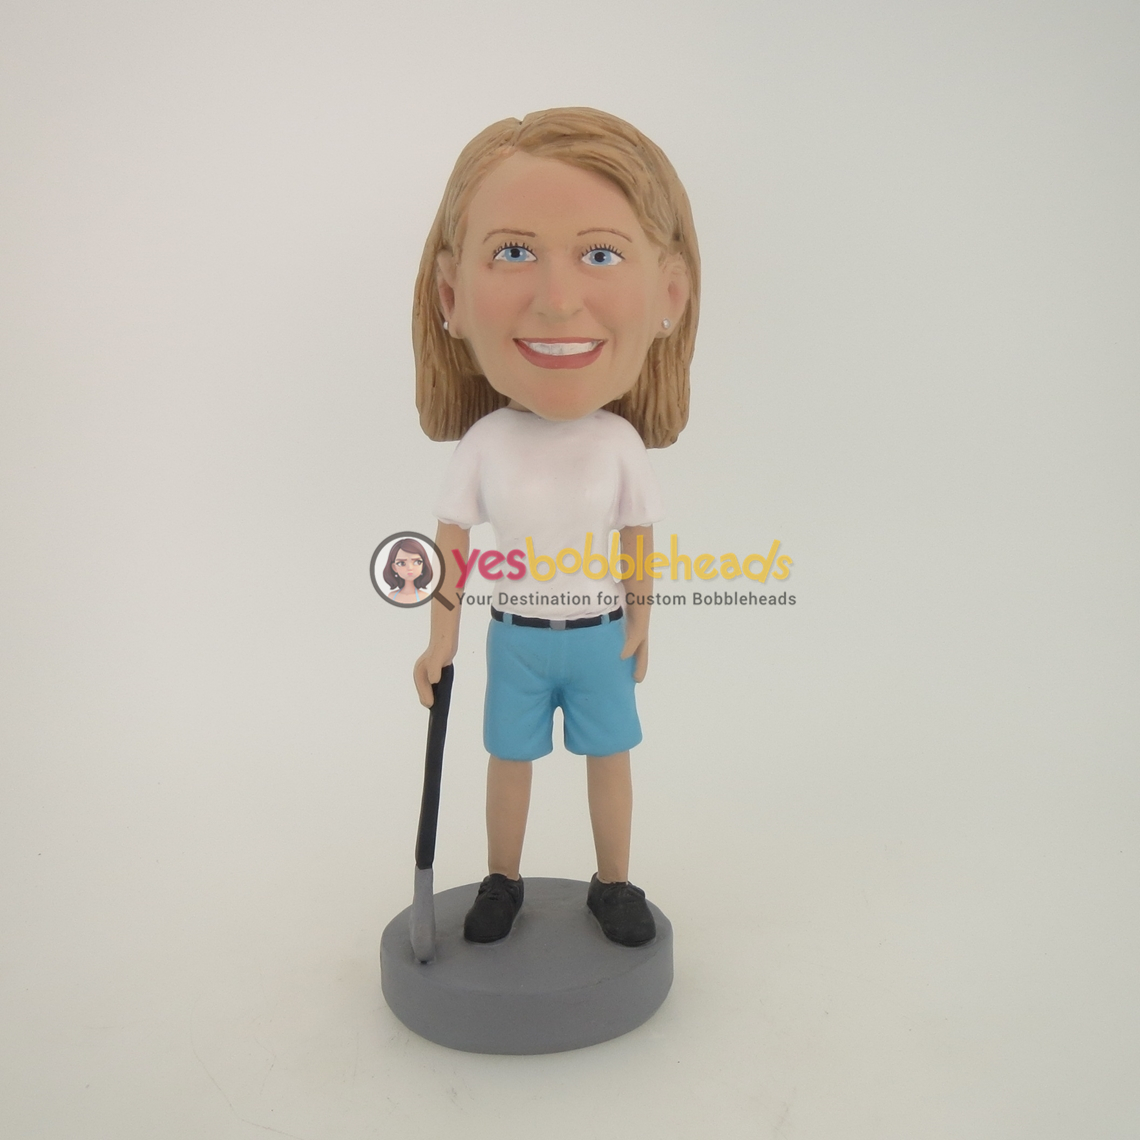 Picture of Custom Bobblehead Doll: Woman Holding Golf Club